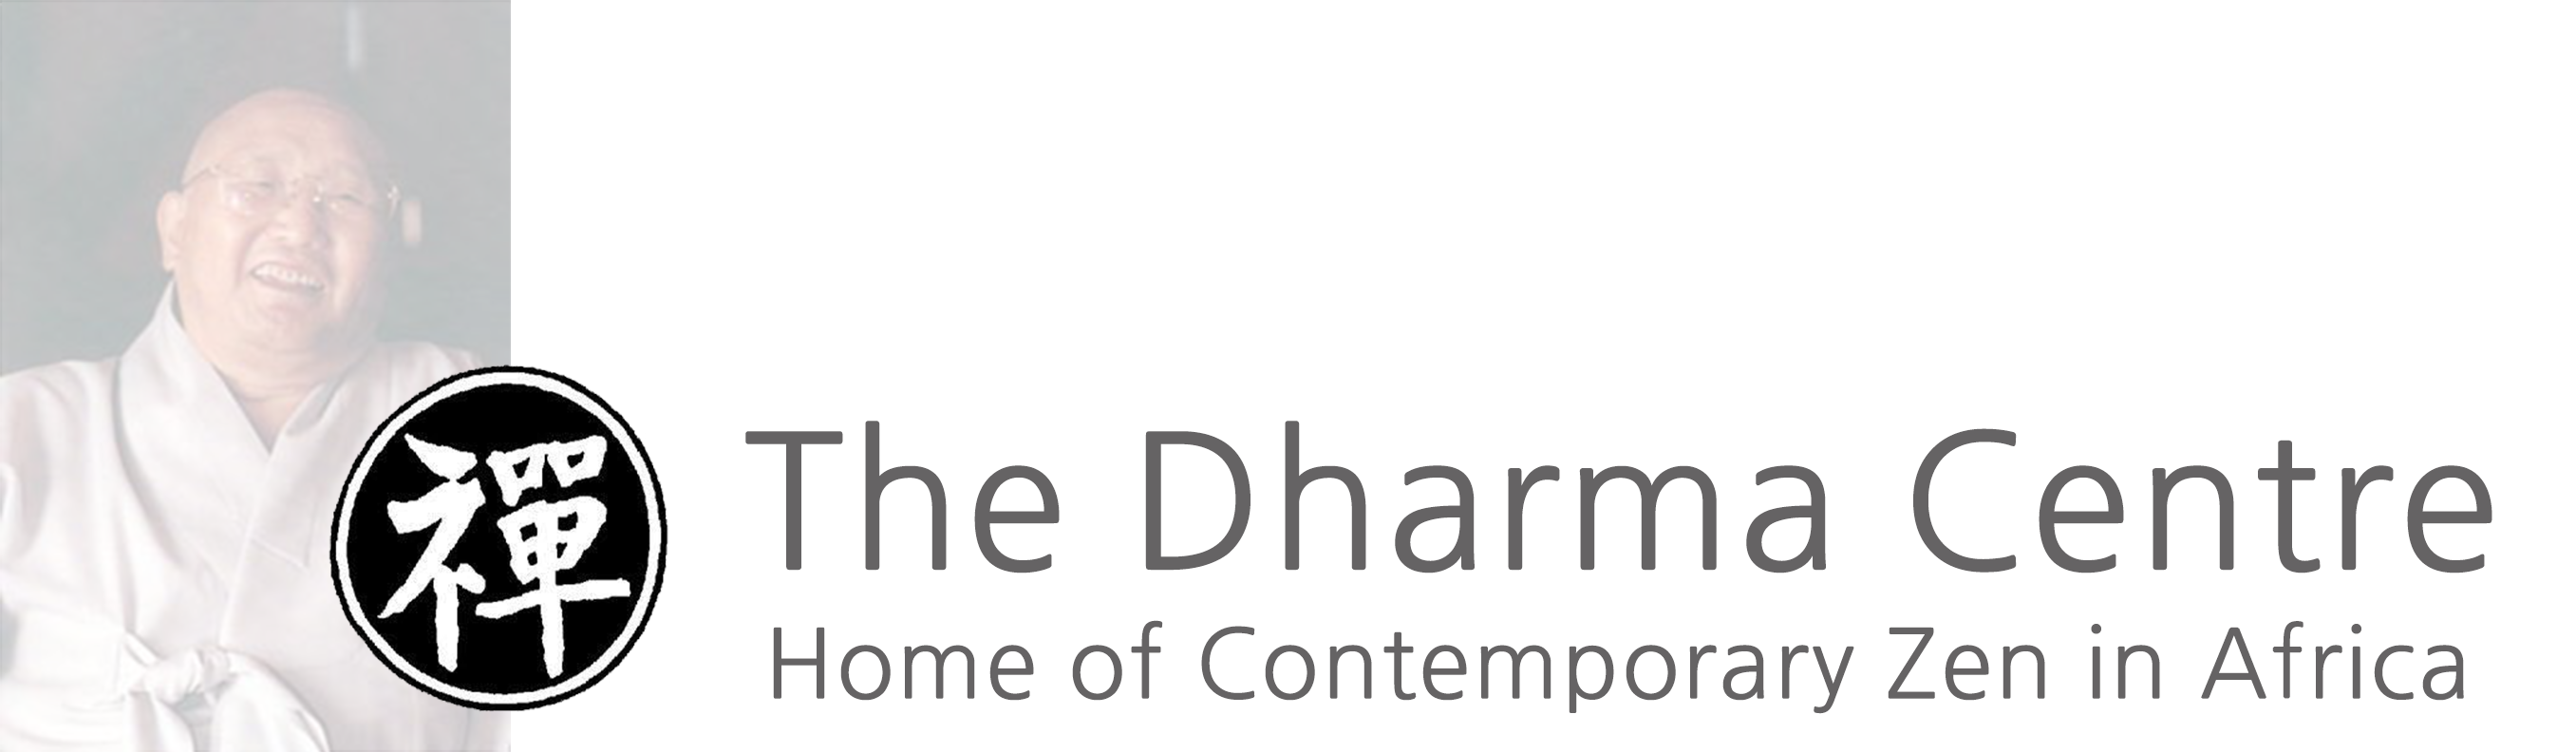 The Dharma Centre